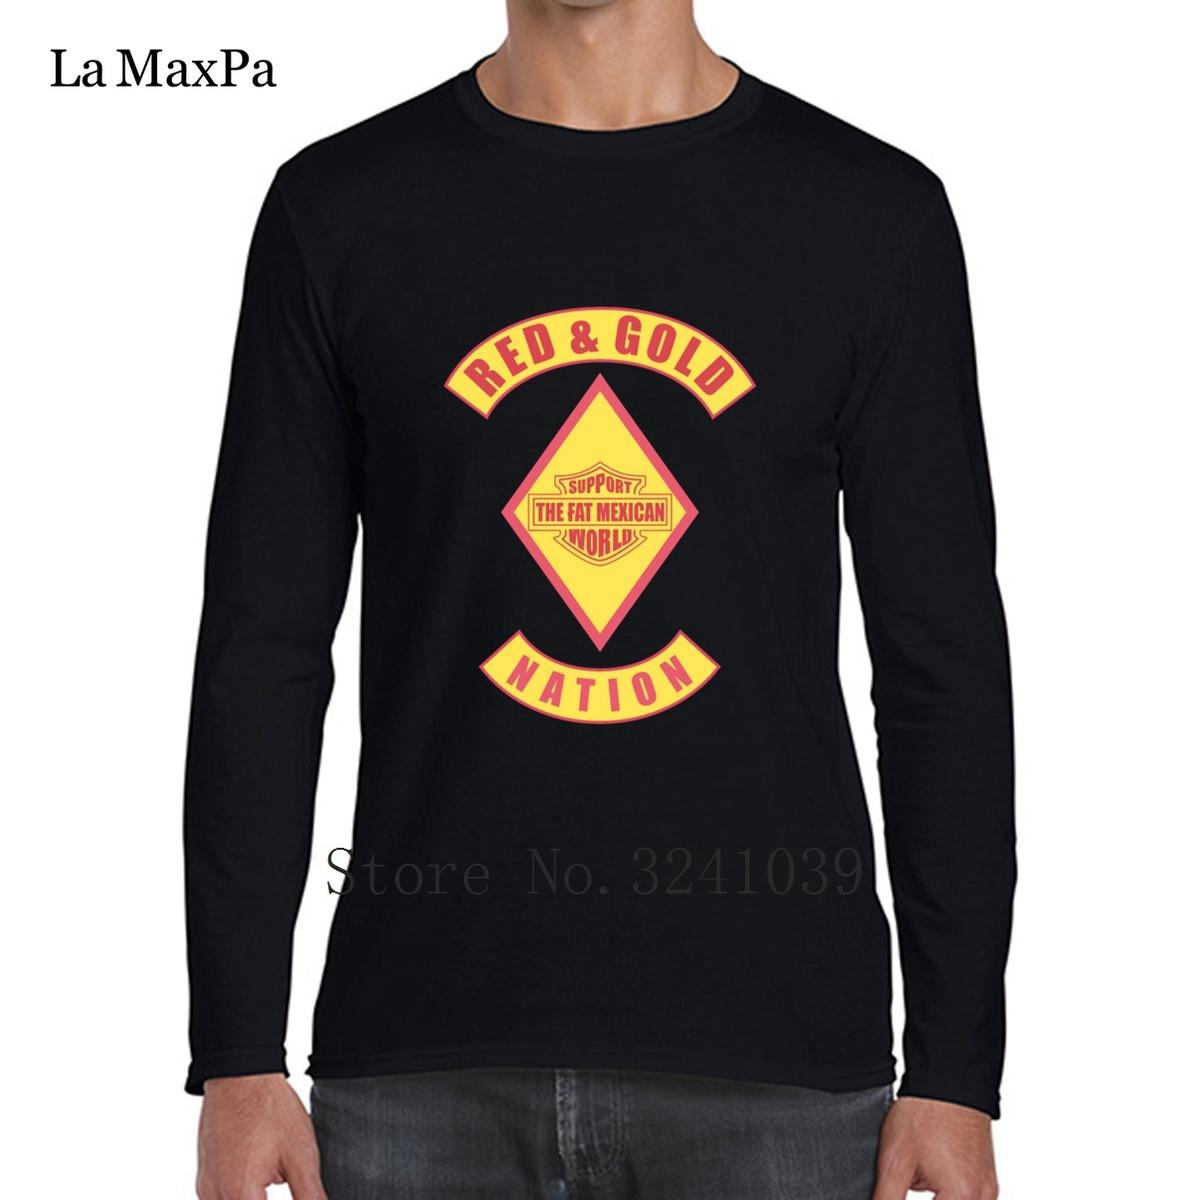 La Maxpa Red Gold Nación Bandido Tee Shirts Camiseta Regular chistosa para hombres Camiseta simple masculina Anti-Arrugas de algodón